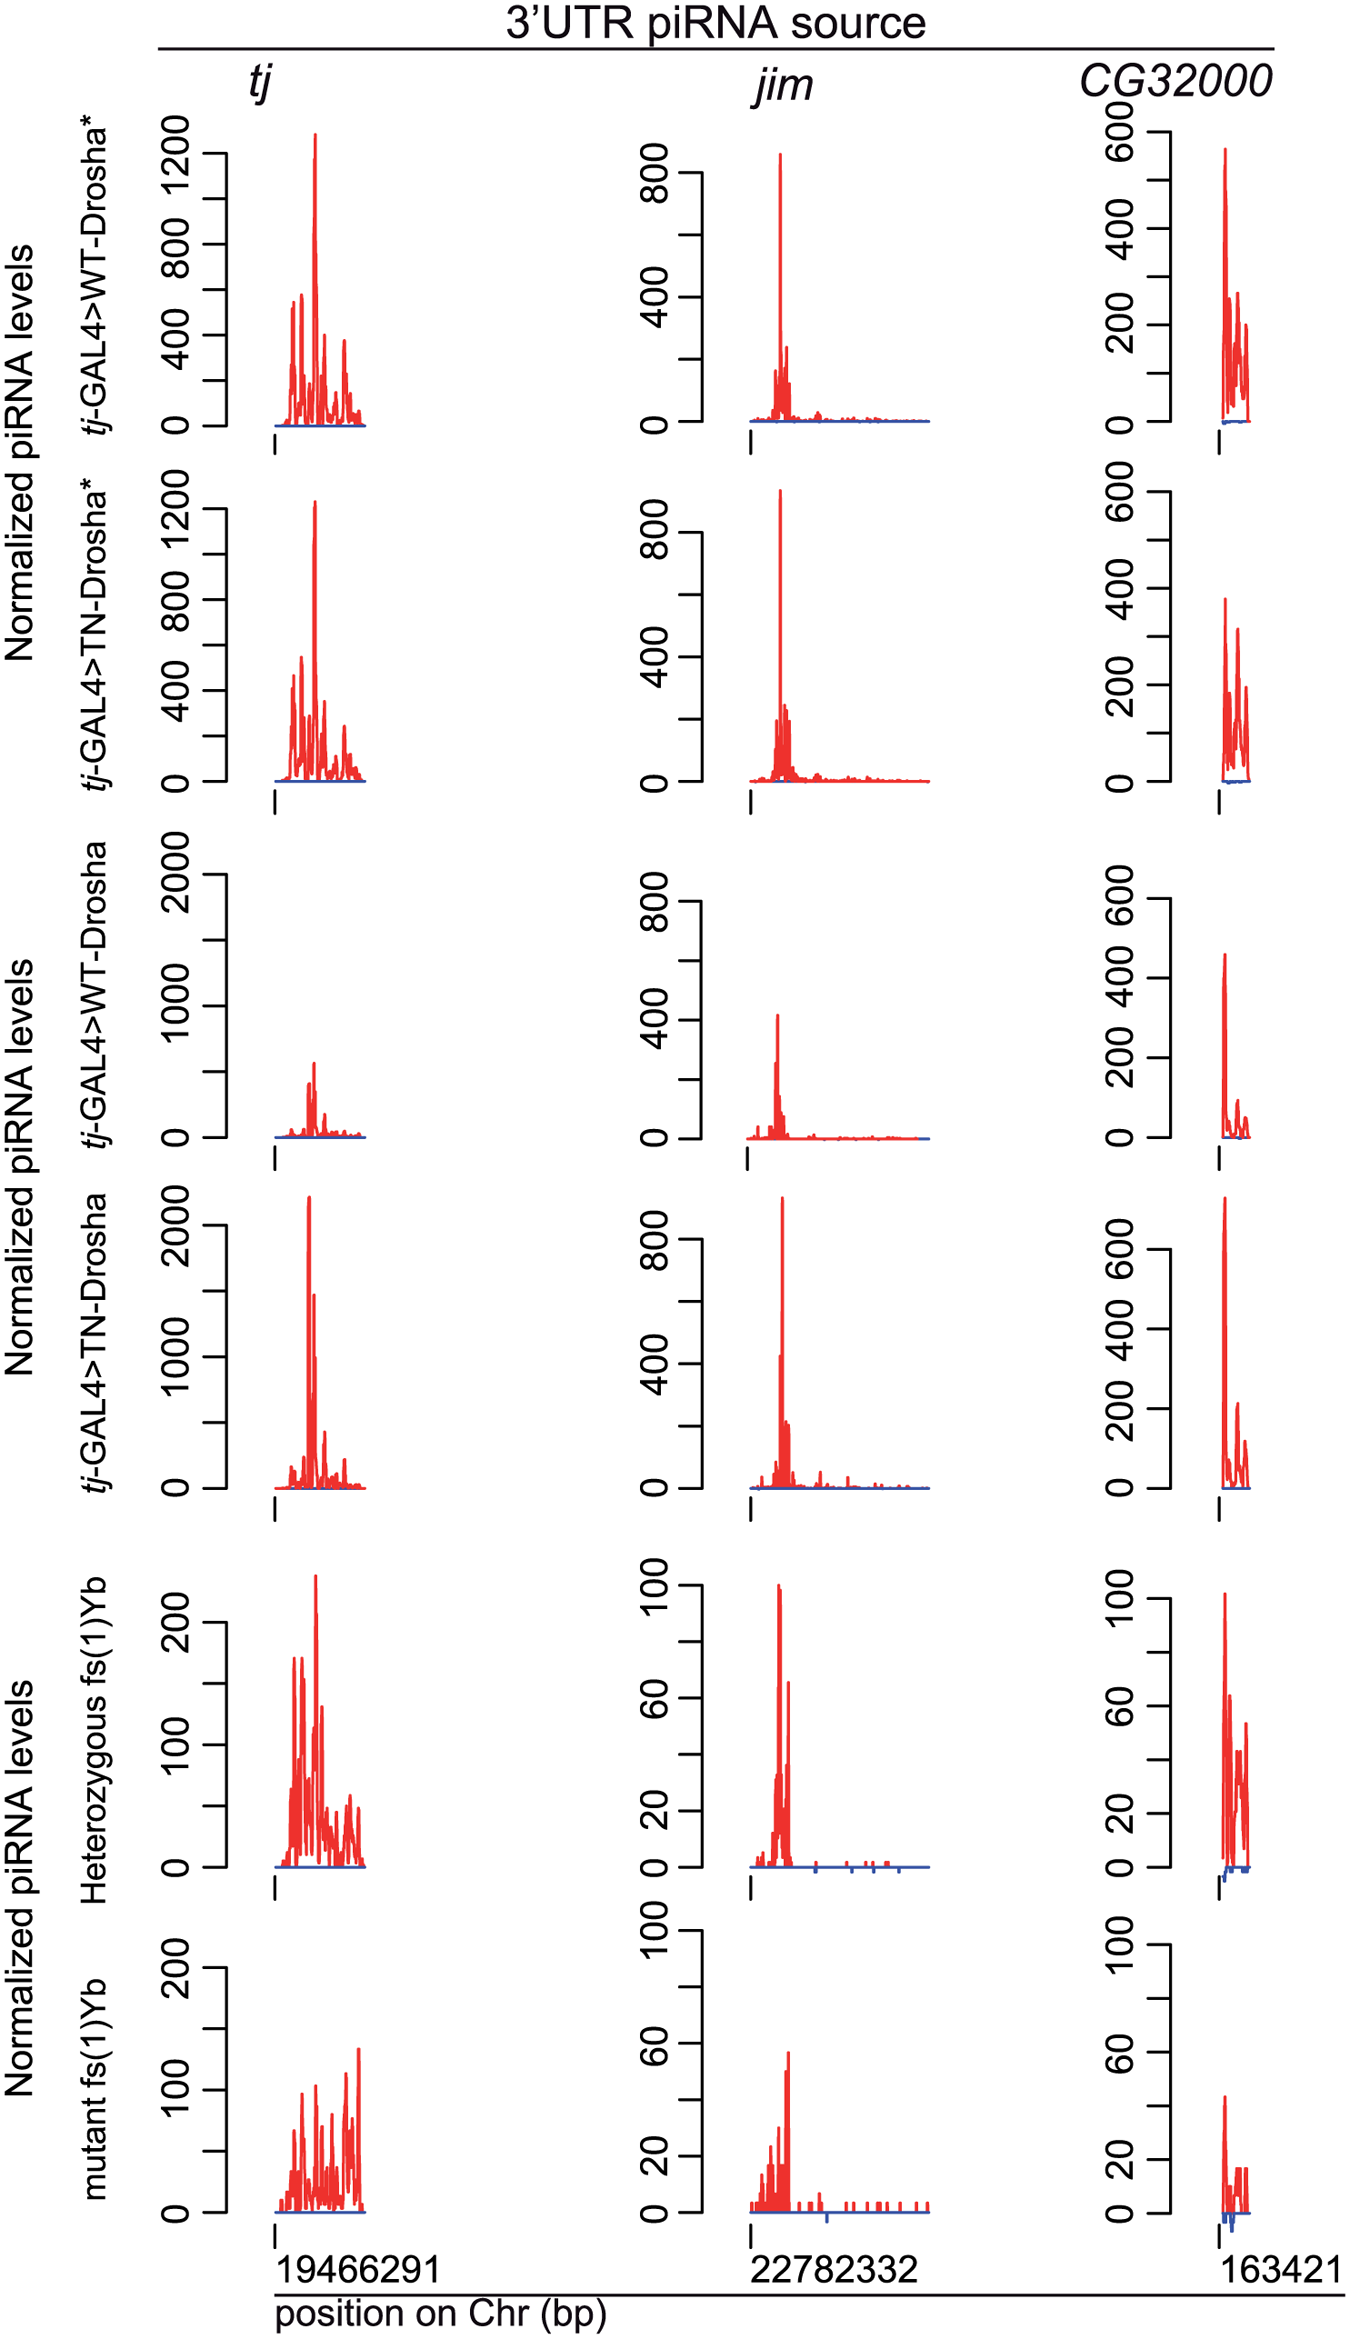 The amount of 3'UTR-derived piRNAs does not decrease in follicle cells lacking Drosha activity.